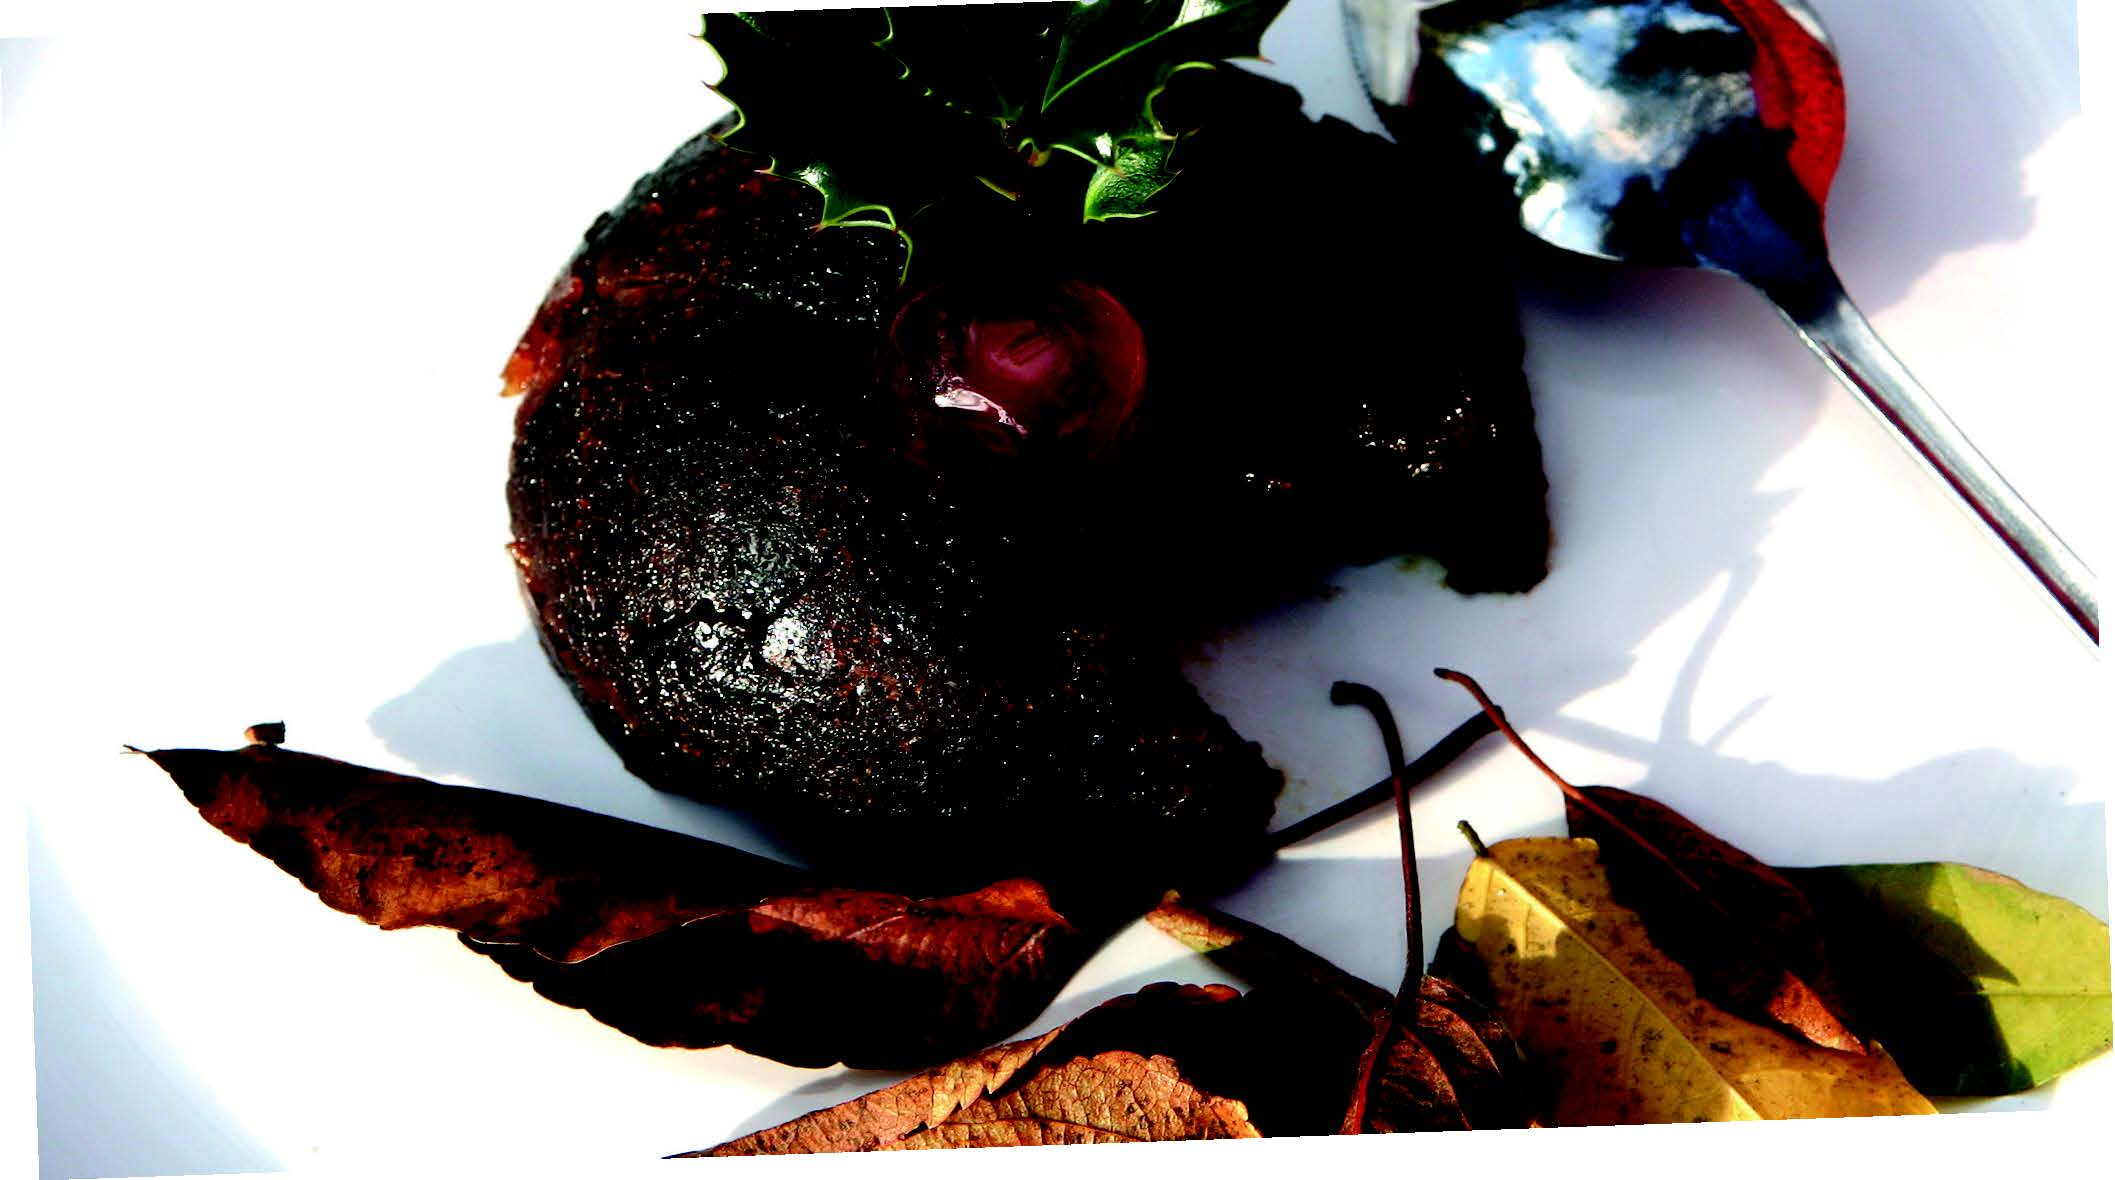 Chocolate Christmas Pudding Recipe from the Capital Region Farmers Market in Canberra